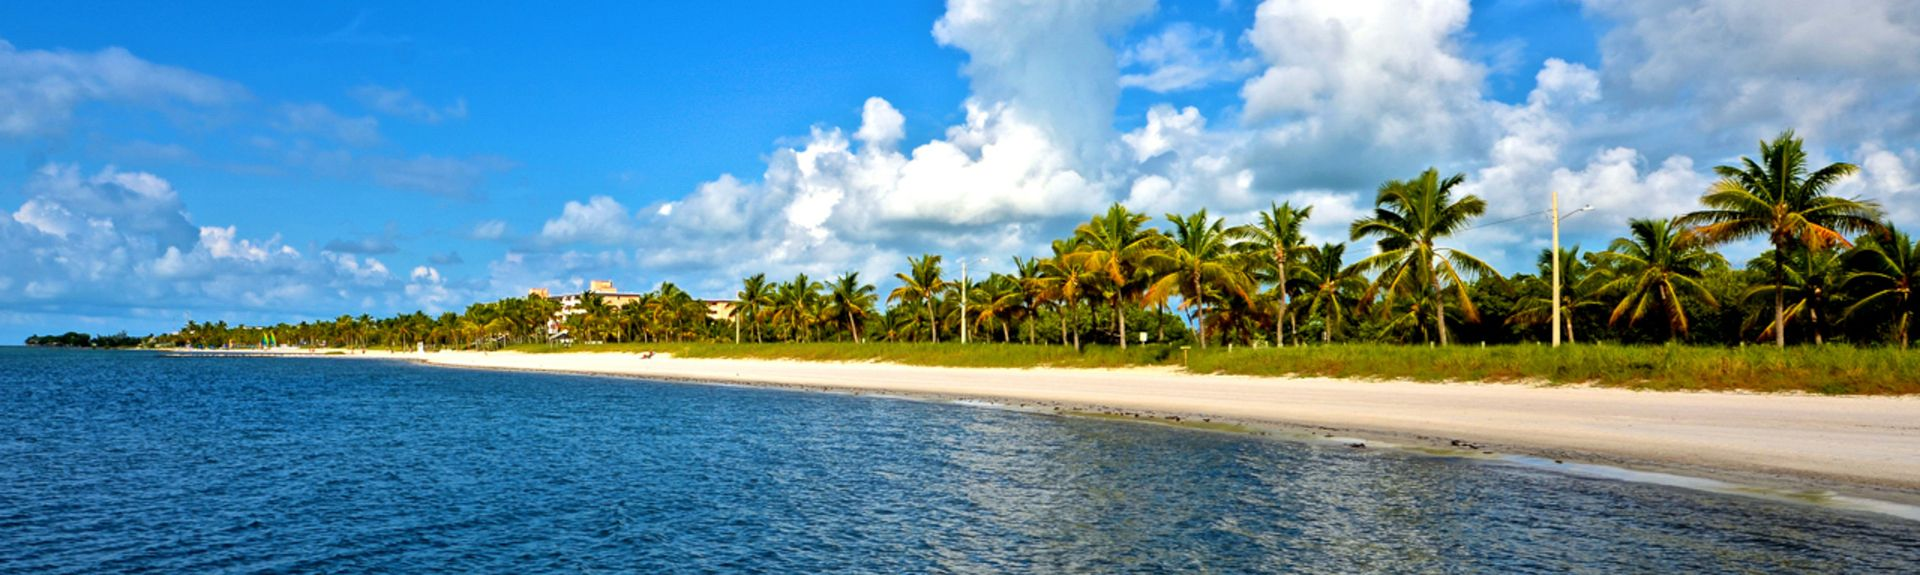 Fort Zachary Taylor Historic State Park, Key West, Florida, USA